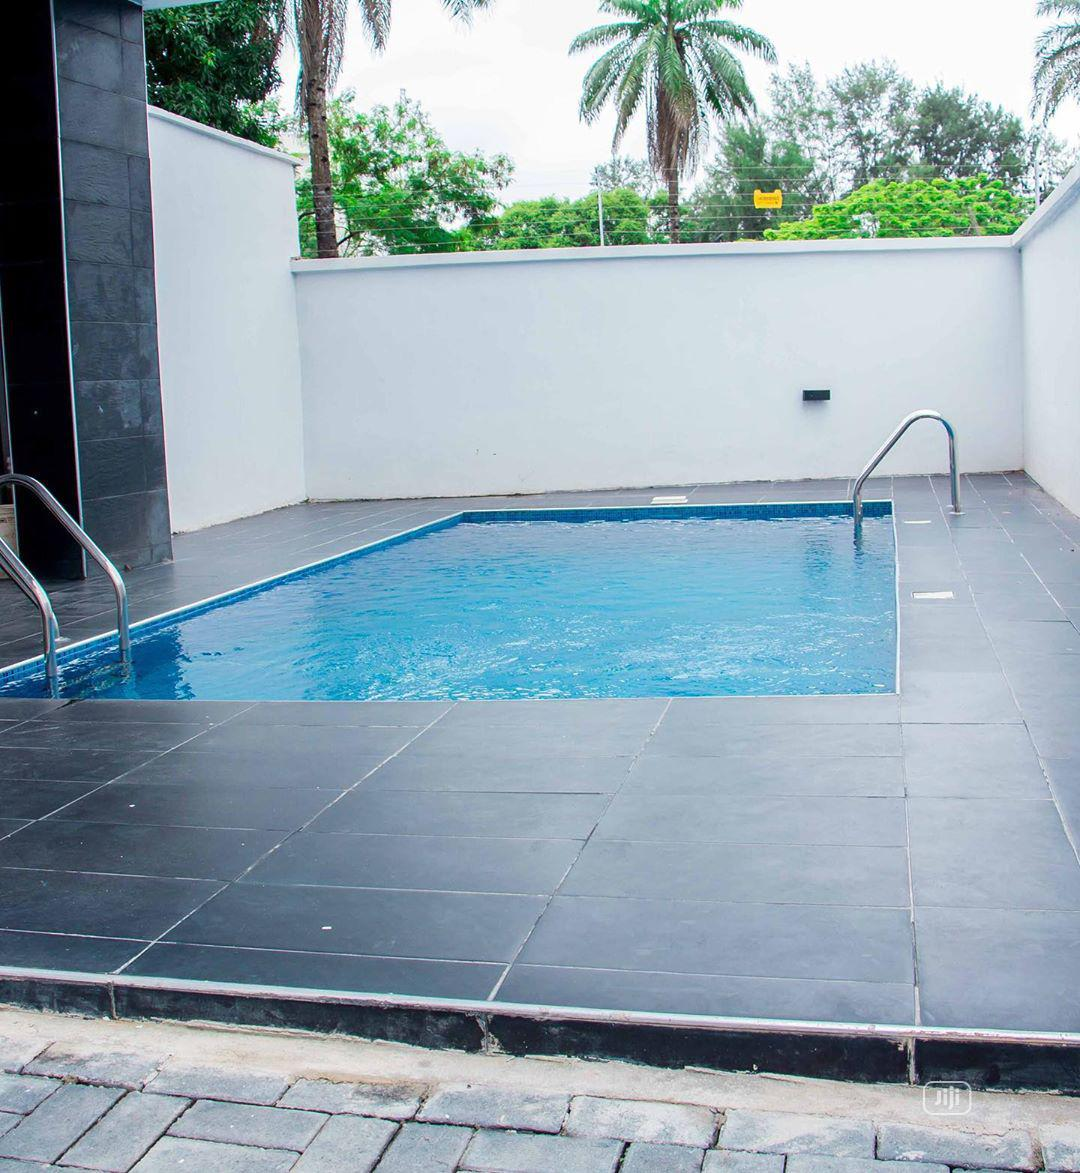 5 Bedroom Duplex In Lagos | Houses & Apartments For Sale for sale in Ikoyi, Lagos State, Nigeria